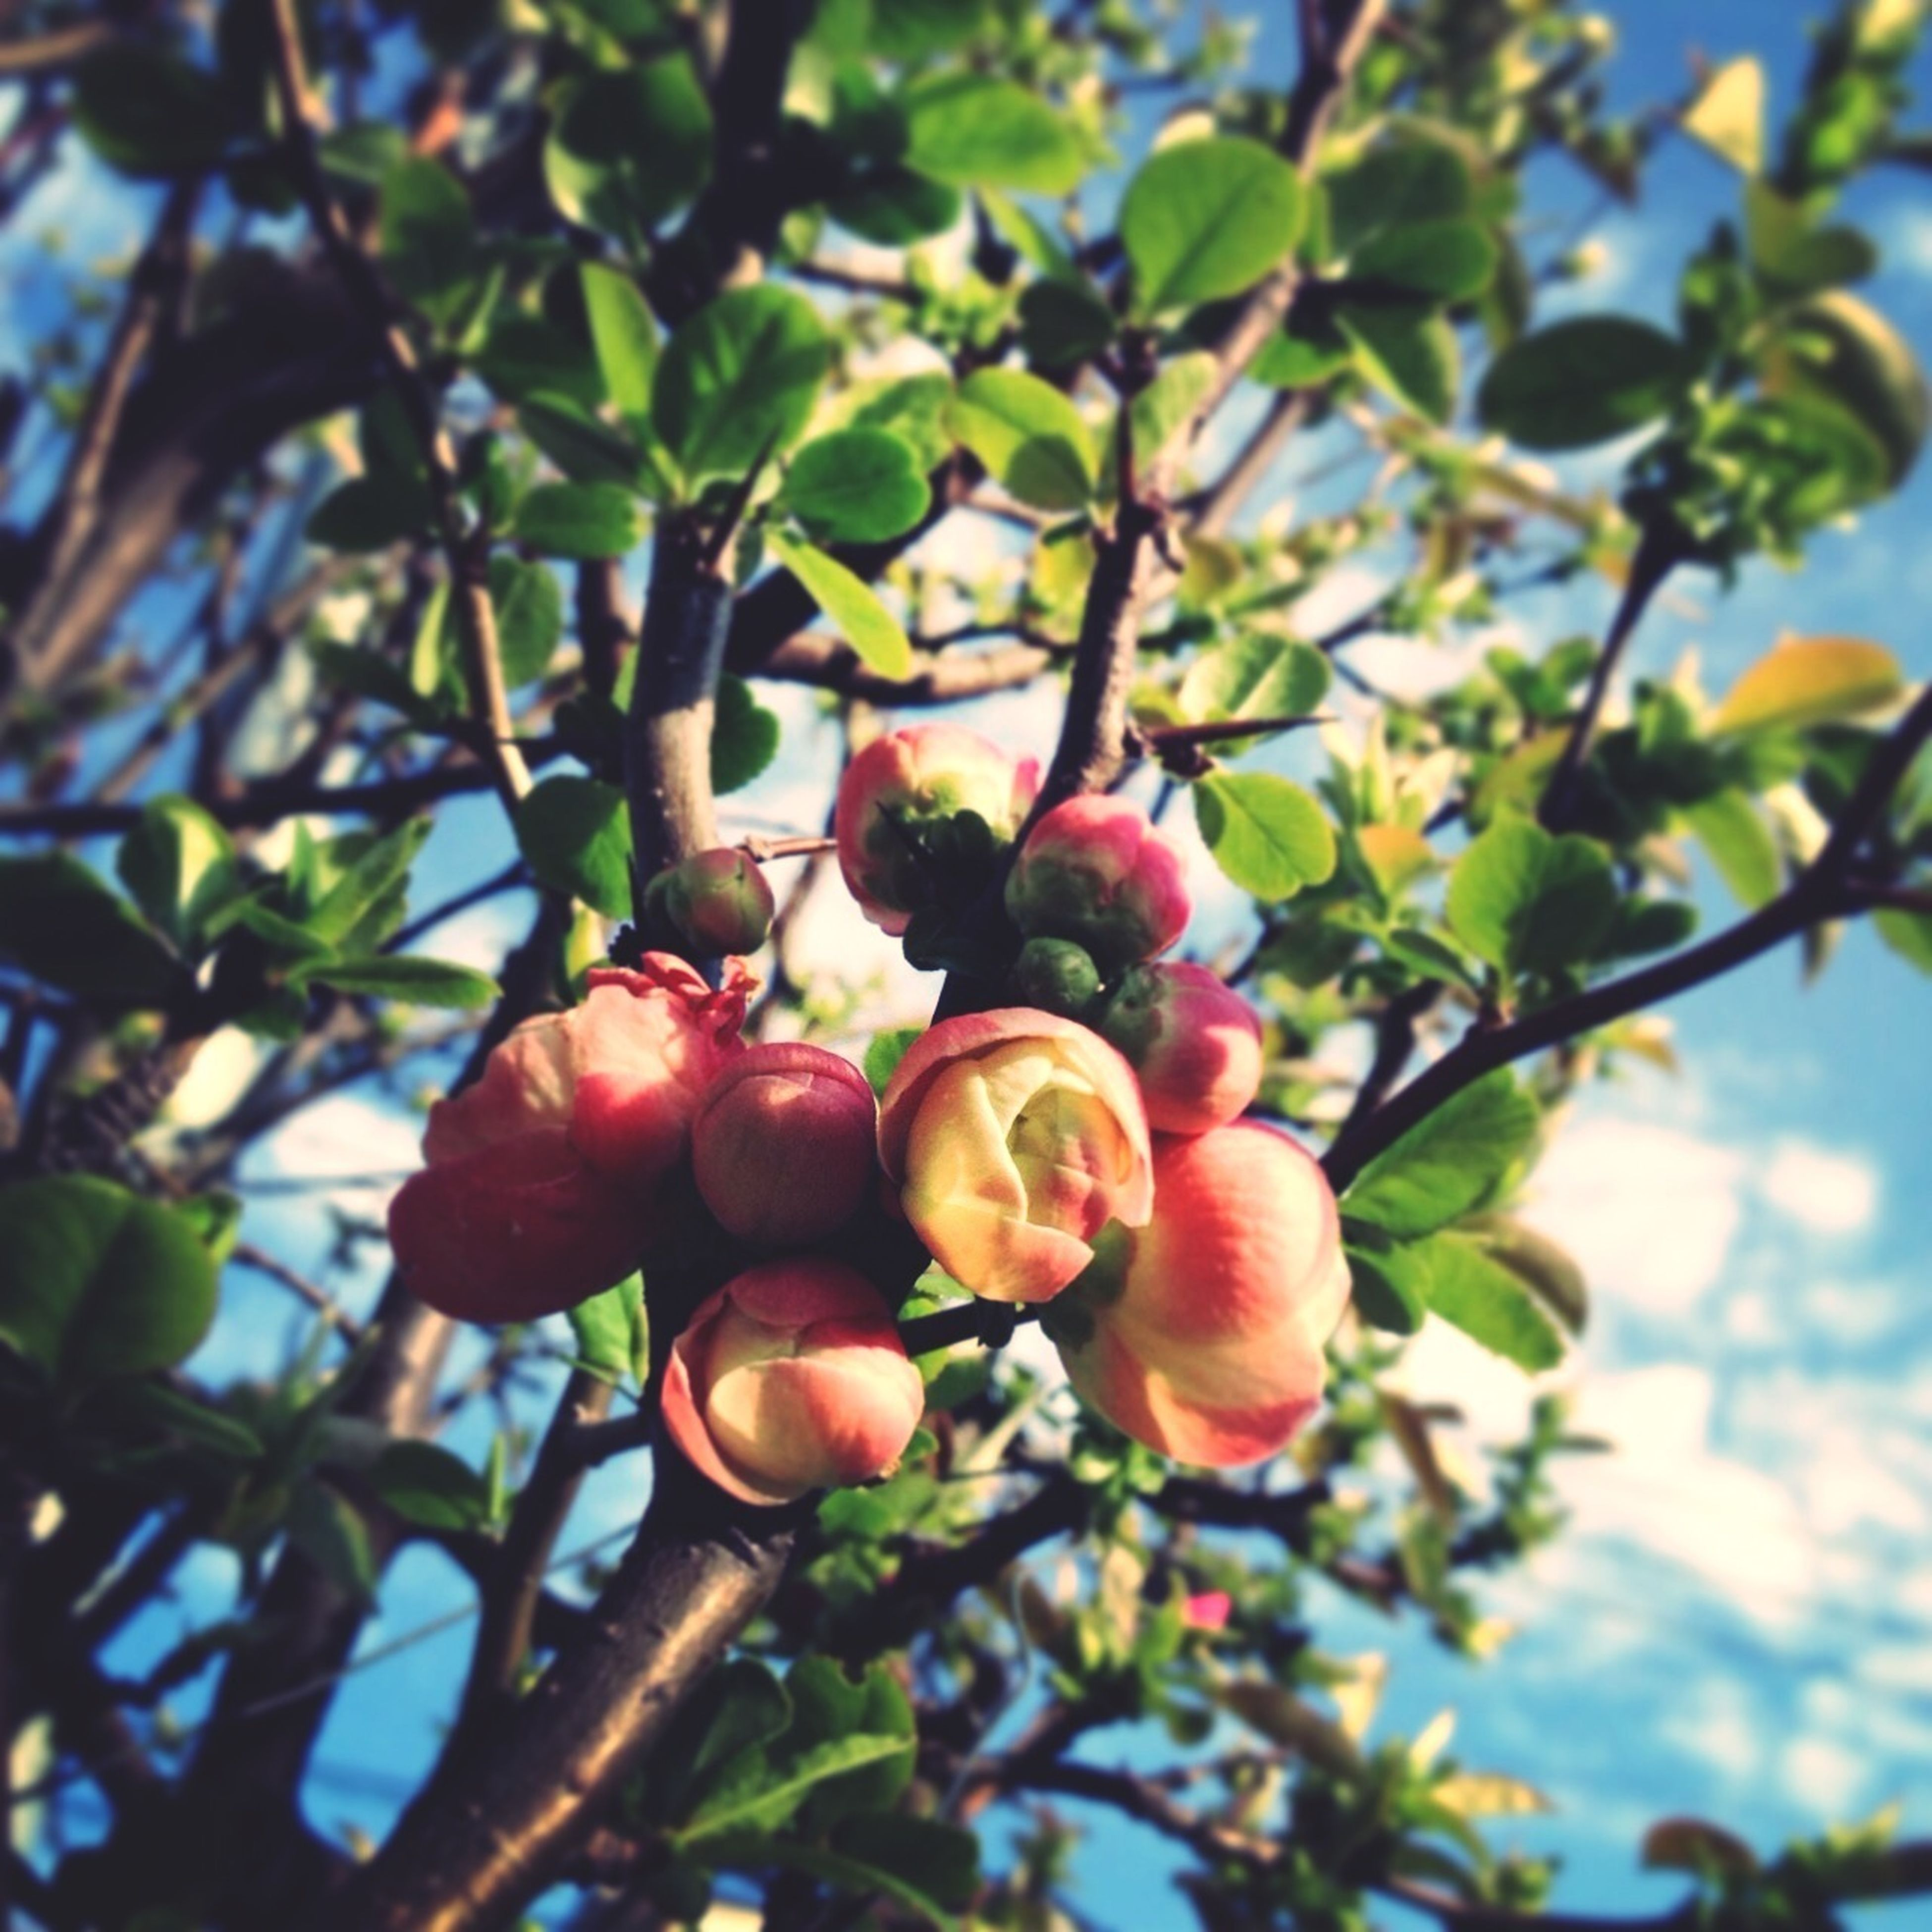 freshness, tree, branch, growth, low angle view, fruit, leaf, food and drink, nature, flower, close-up, focus on foreground, beauty in nature, food, apple tree, red, day, outdoors, bud, sky